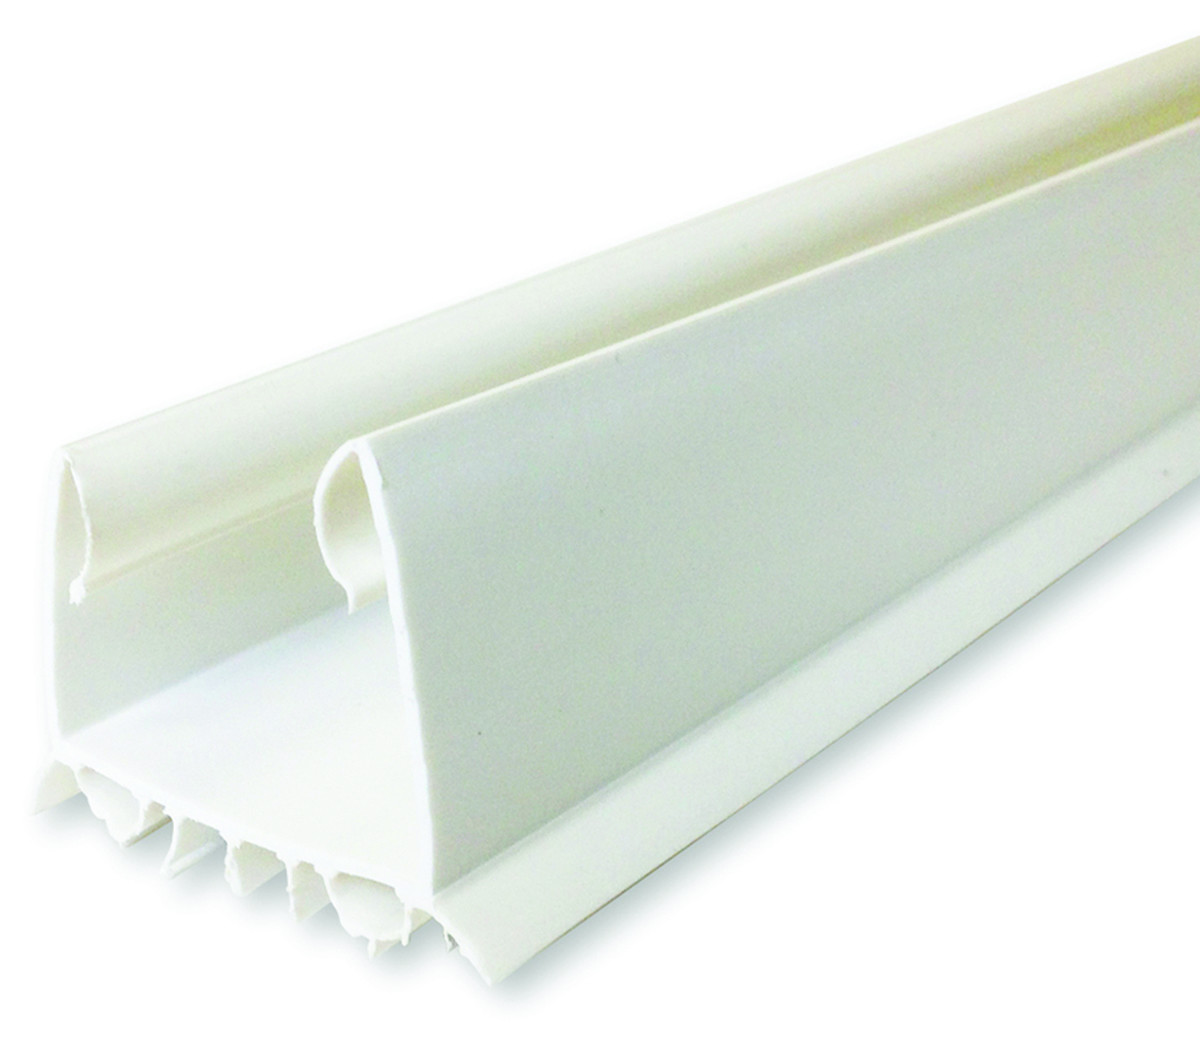 MD Building Products 43336 Door Seal Under White 36In